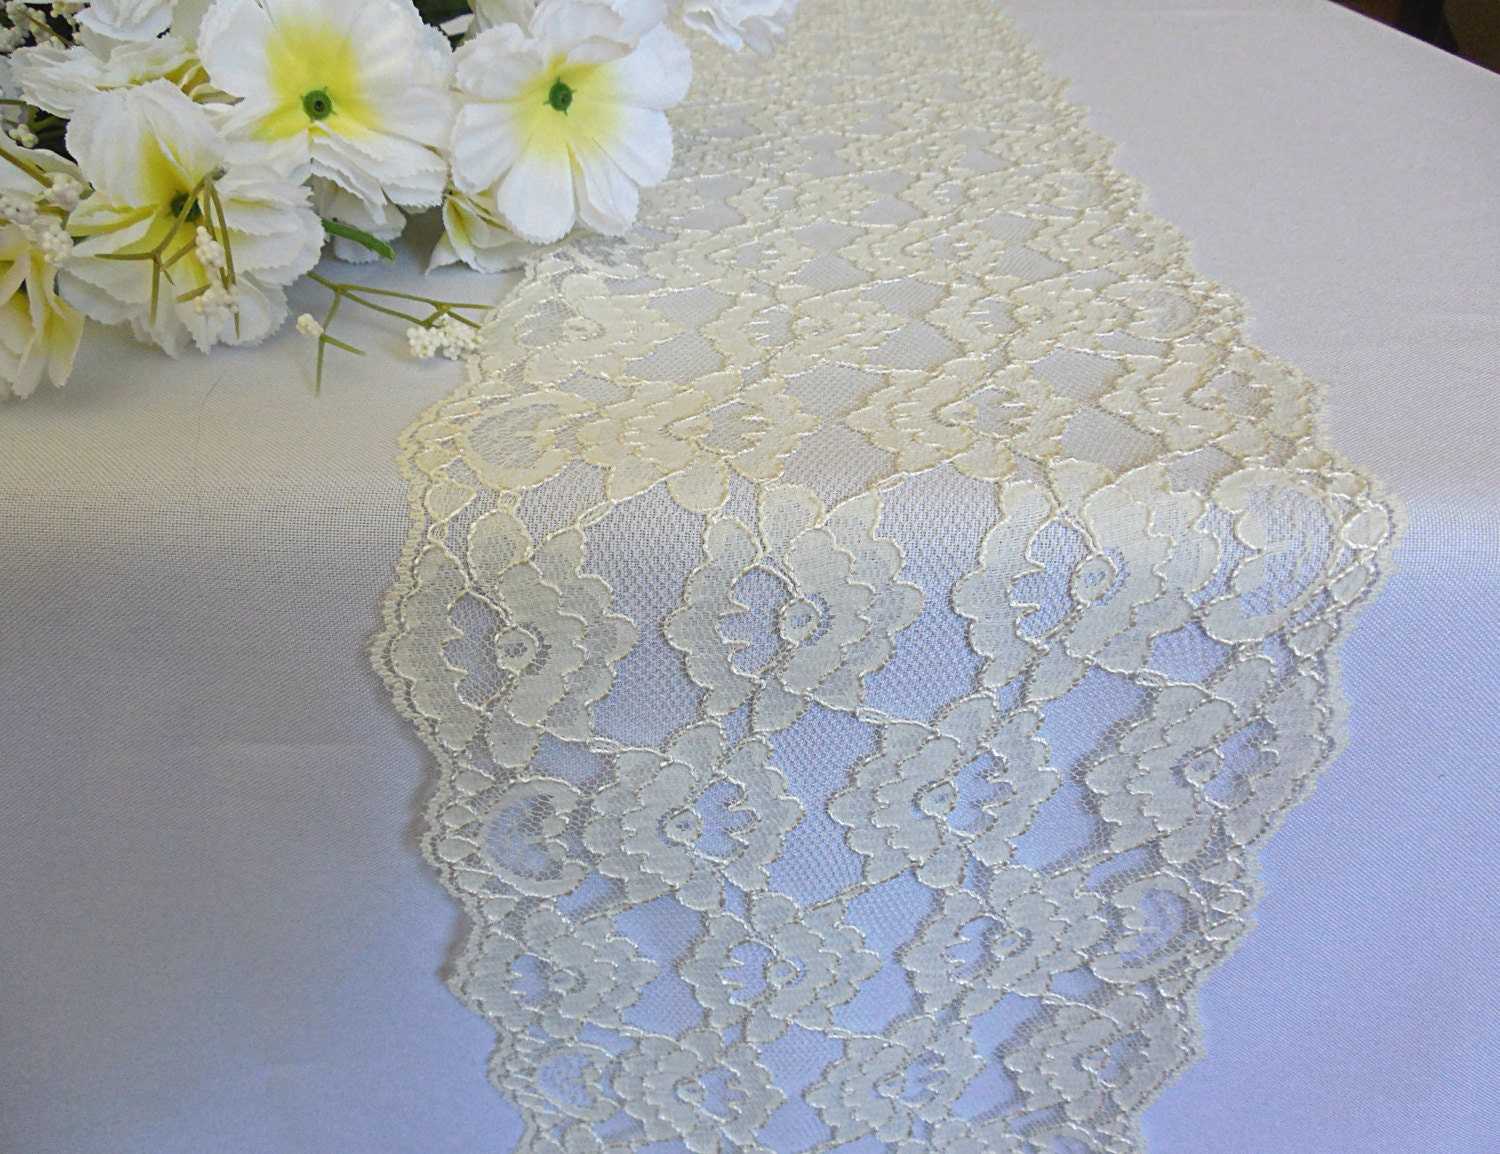 wedding table runner wedding table runners Ivory lace table runner wedding lace runner ivory italian lace wedding table decor party bridal shower